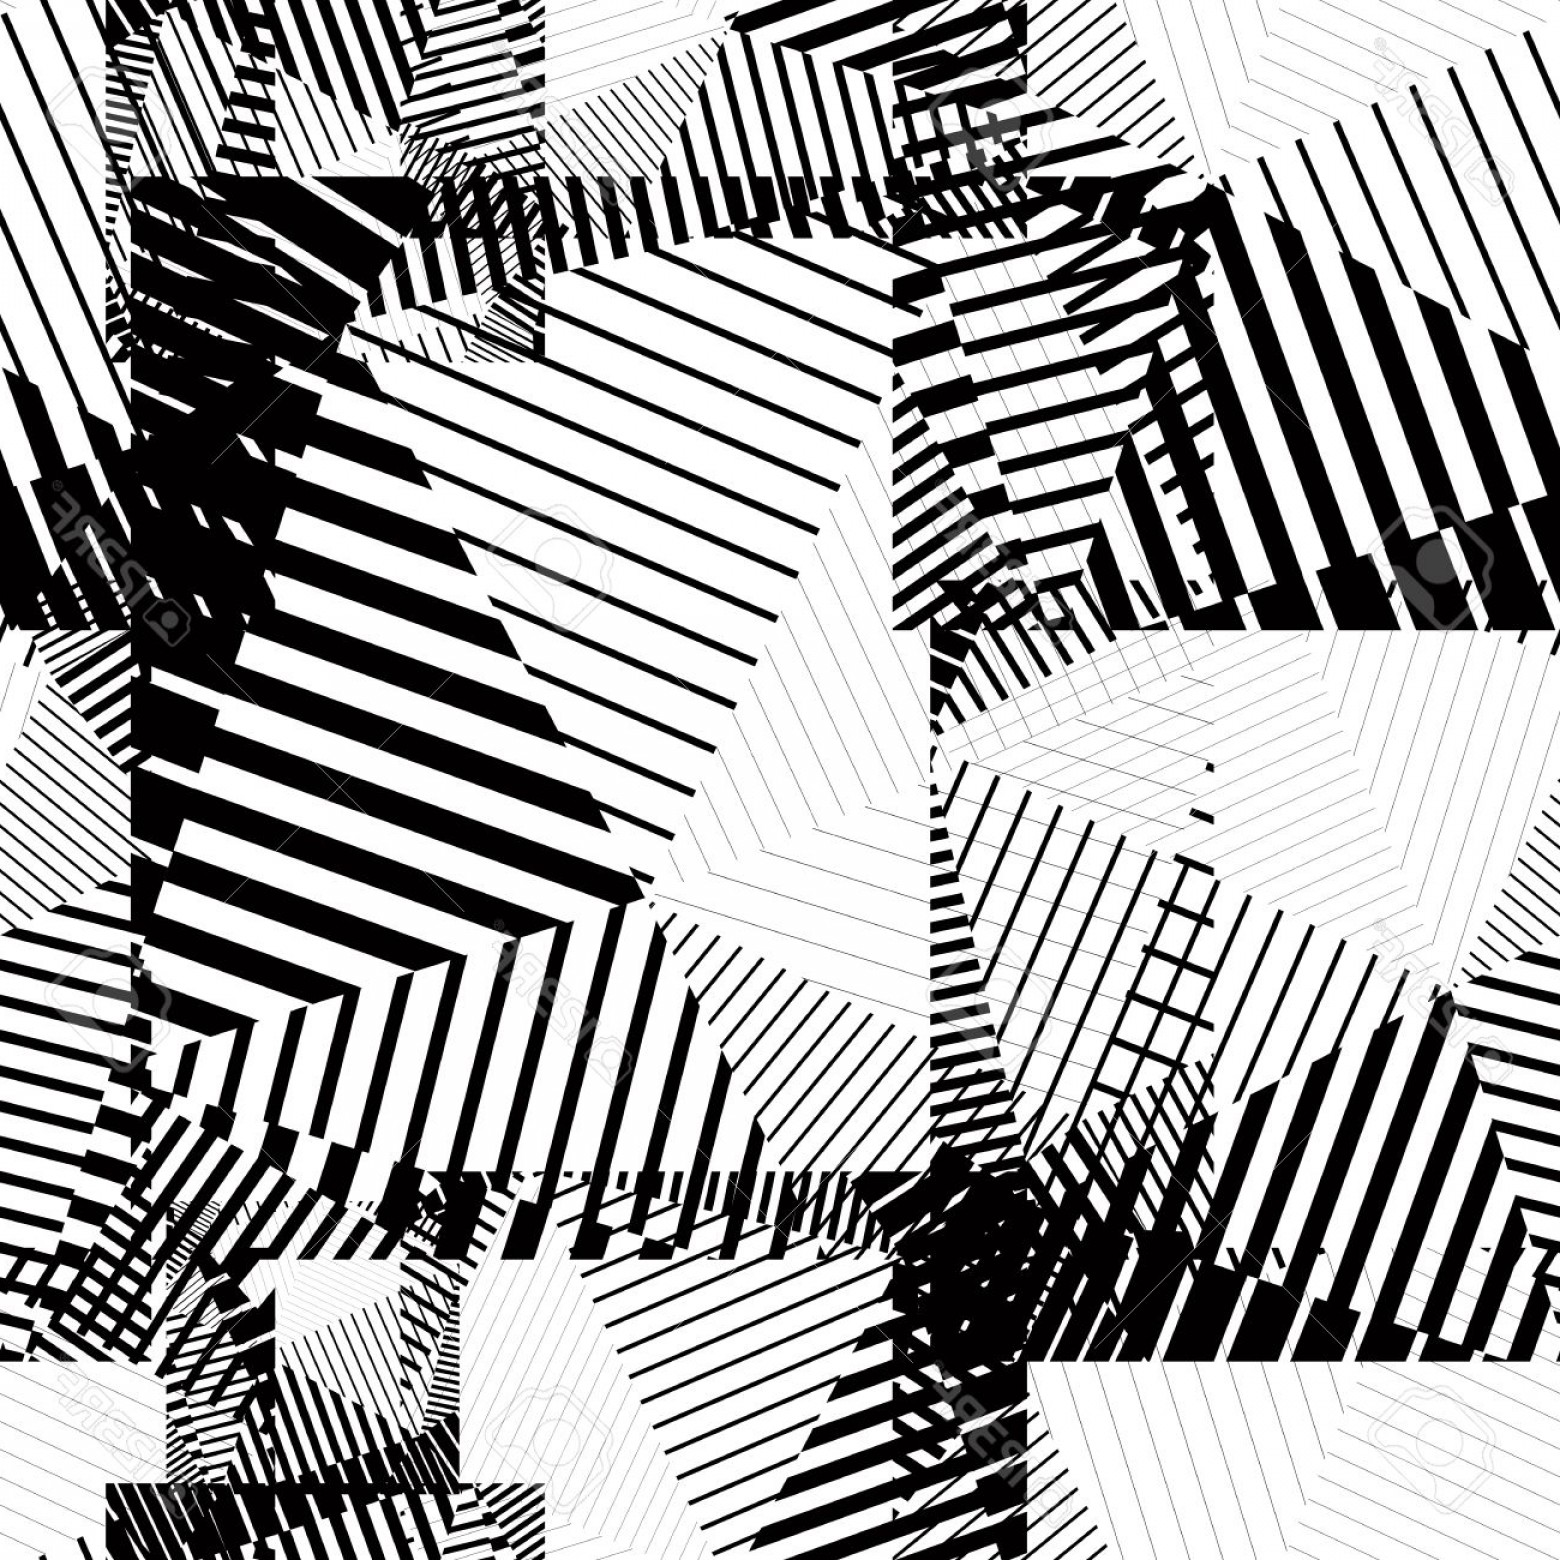 Black Abstract Lines Vector: Photostock Vector Black And White Abstract Lines Seamless Pattern Vector Psychedelic Wallpaper With Stripes And Geomet